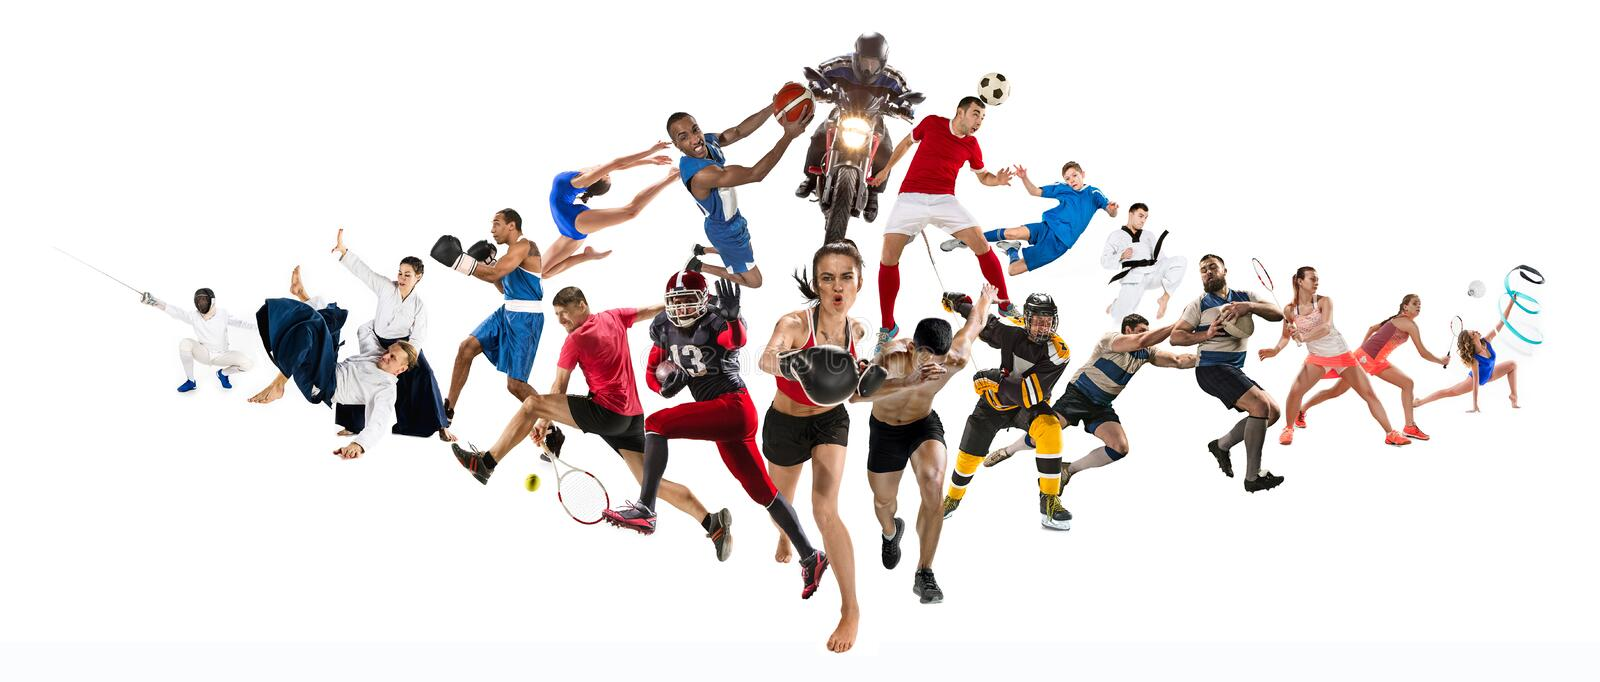 Sport collage about kickboxing, soccer, american football, basketball, ice hockey, badminton, taekwondo, tennis, rugby. Attack. Sport collage about kickboxing royalty free stock images